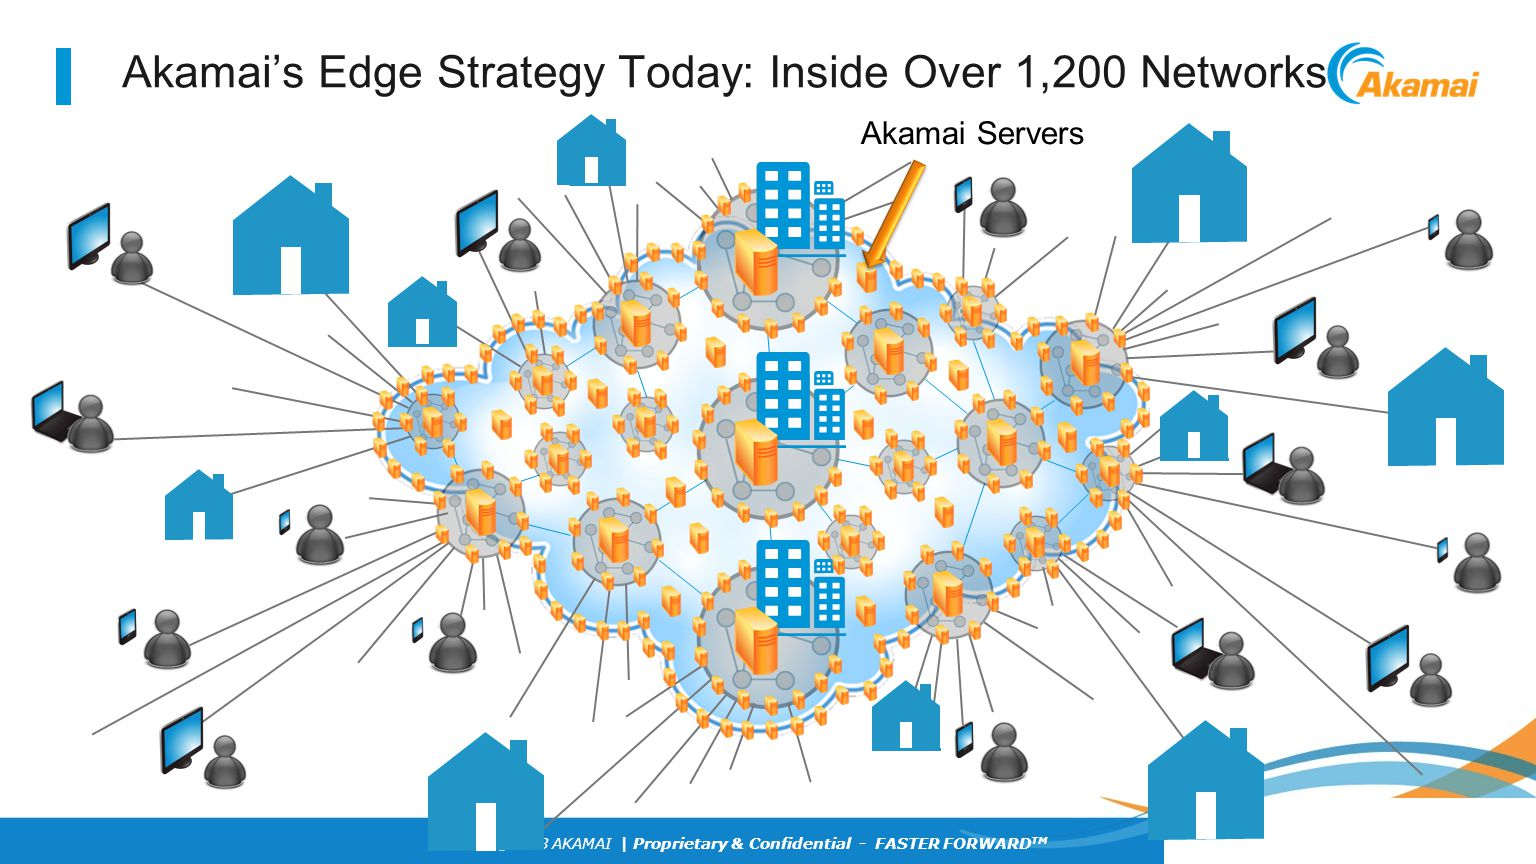 Akamai's Edge Strategy Today: Inside Over 1,200 Networks